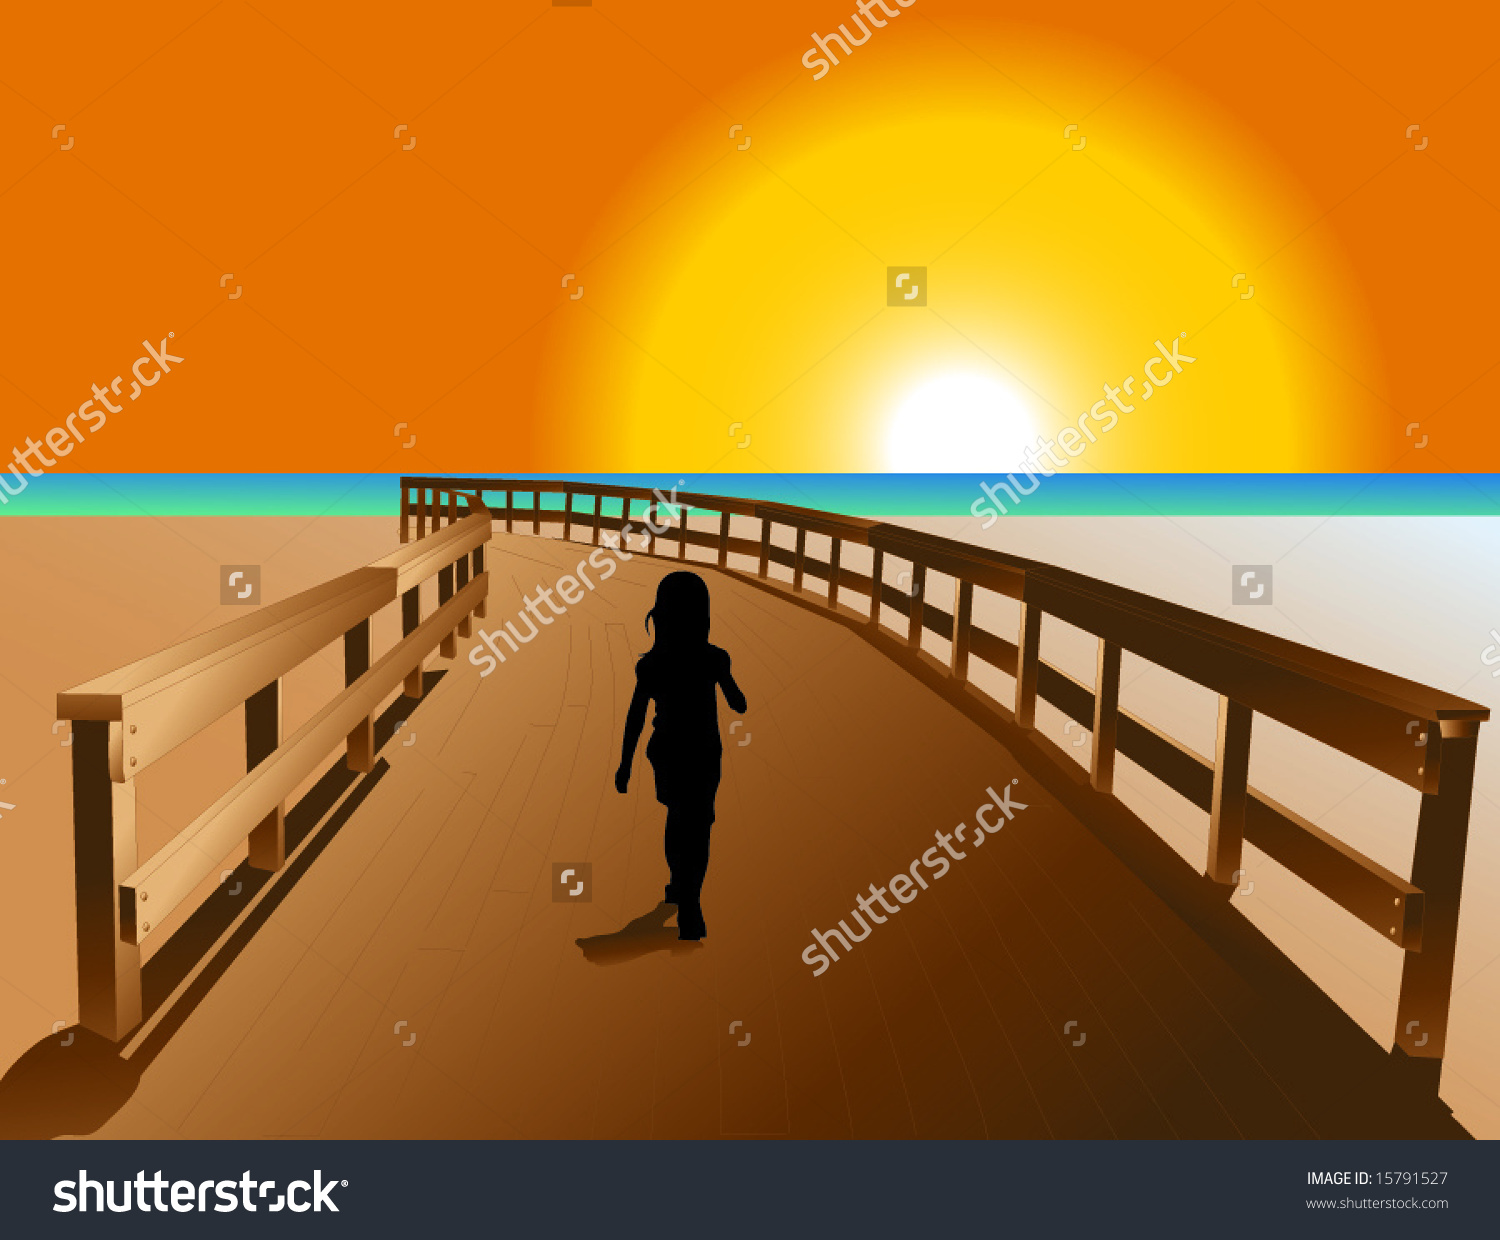 A Little Girl Walking Down A Boardwalk Stock Vector Illustration.